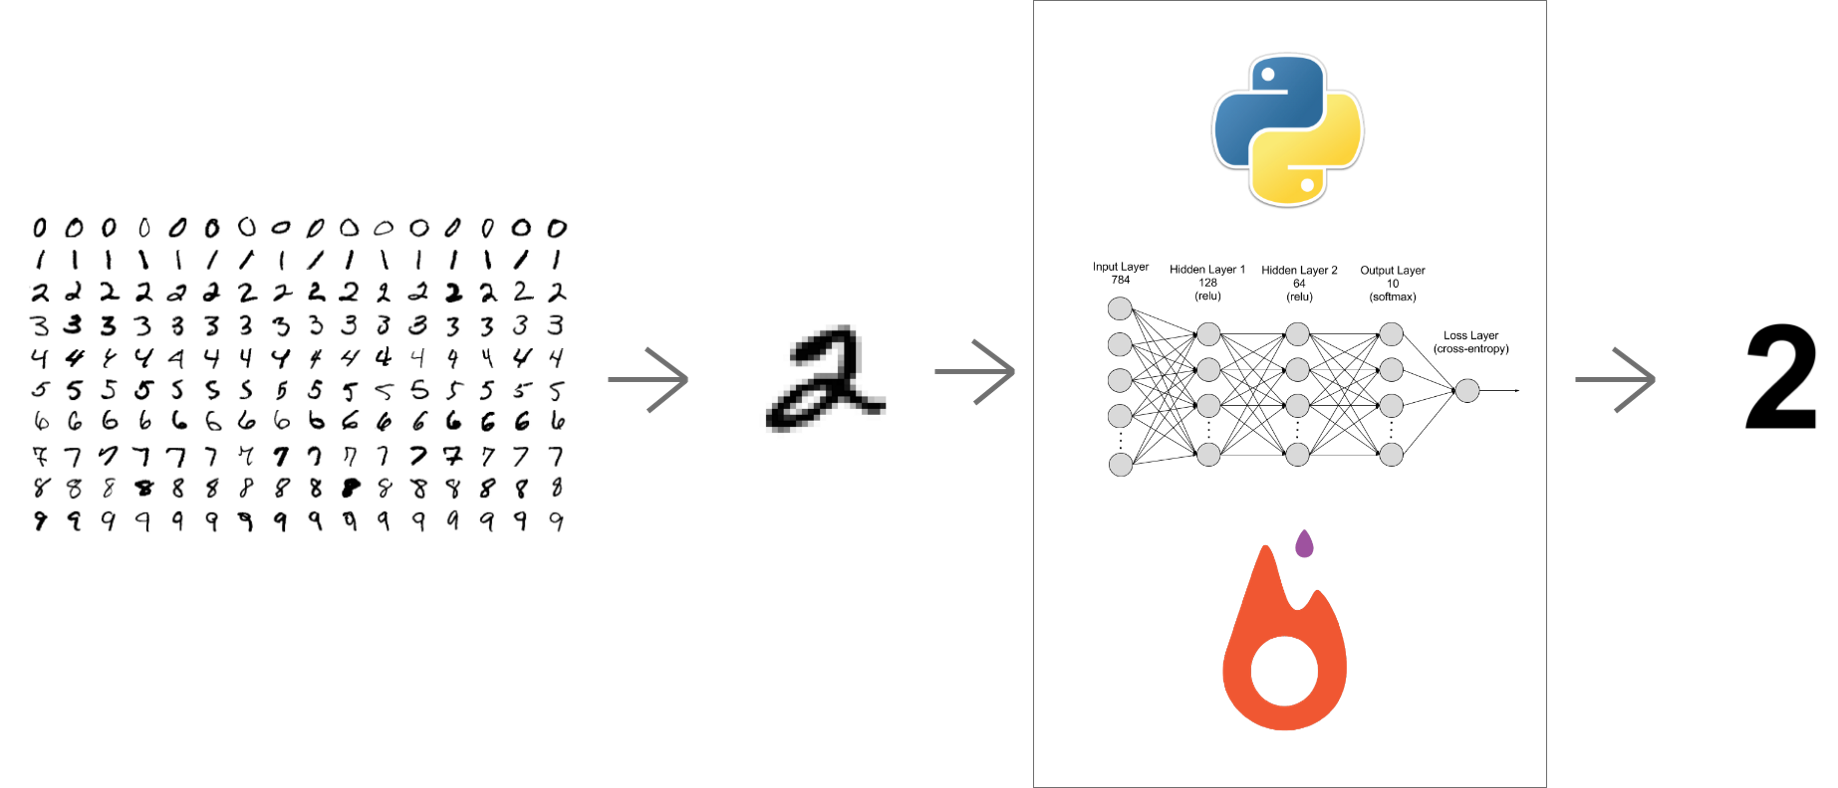 Handwritten Digit Recognition Using PyTorch — Intro To Neural Networks